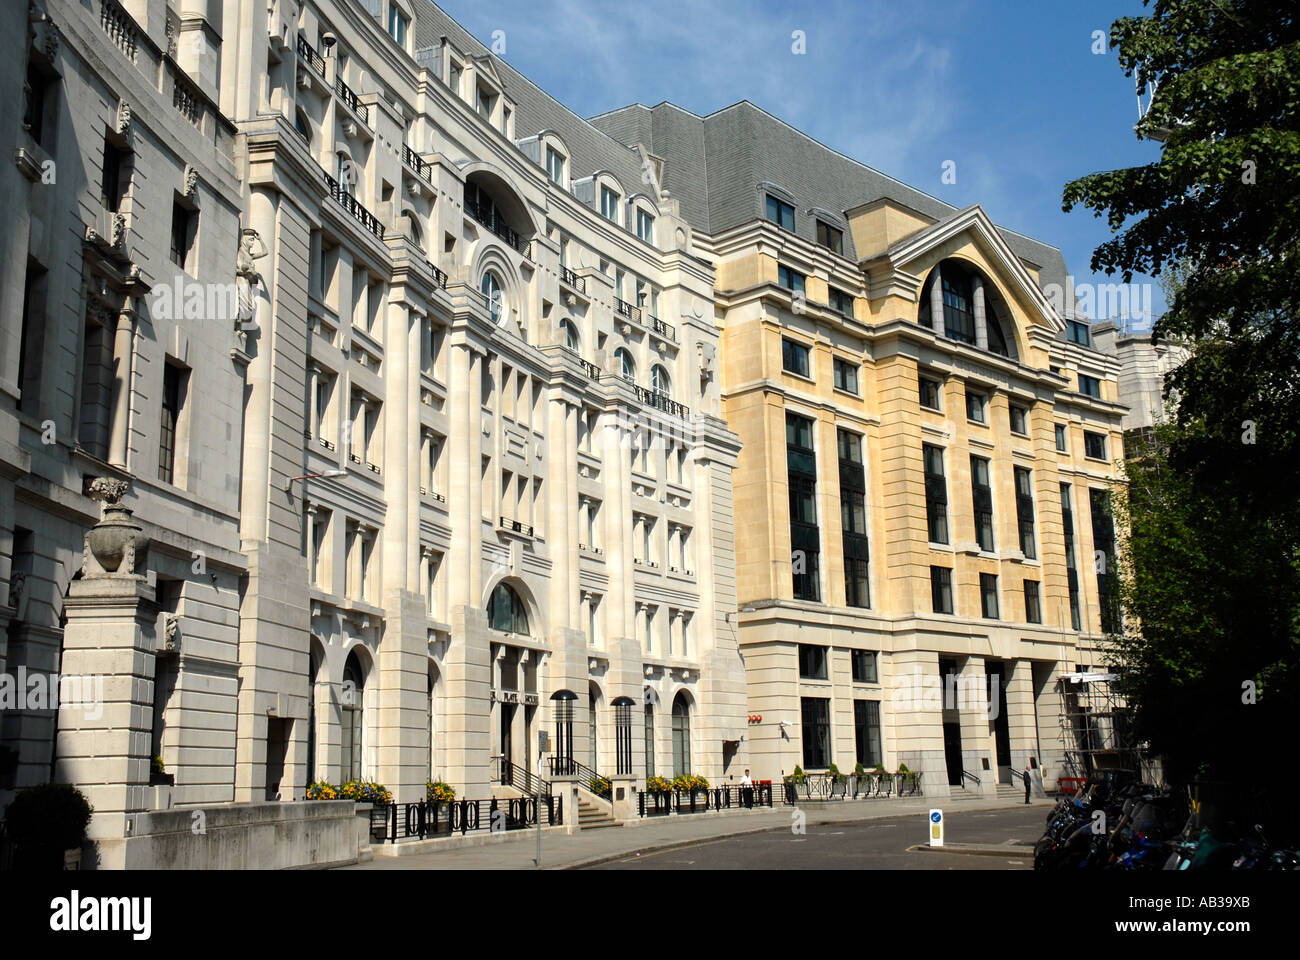 Buildings in Finsbury Circus in the City of London - Stock Image